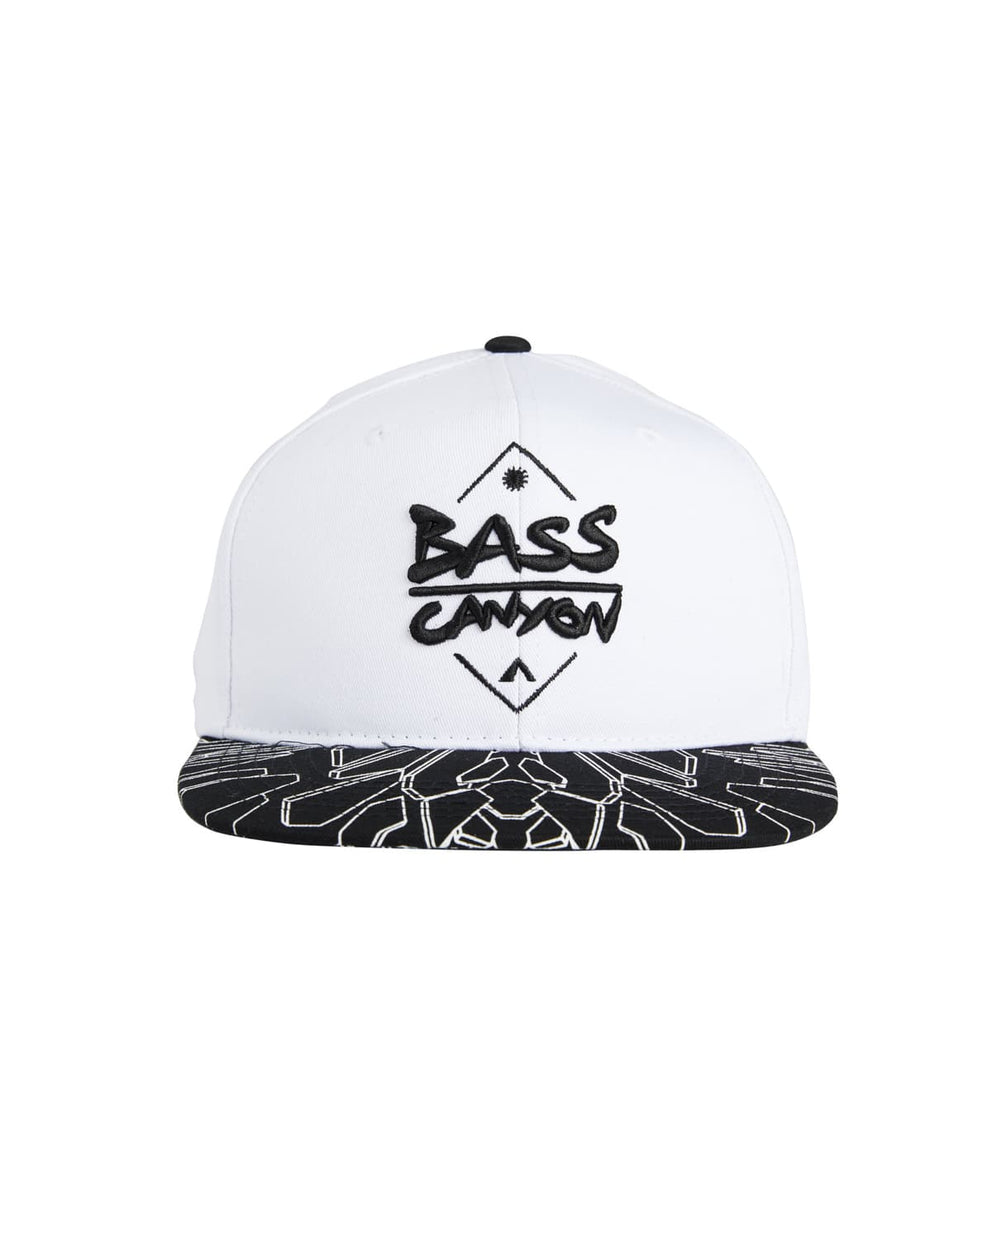 Bass Canyon Snapback - White/Black